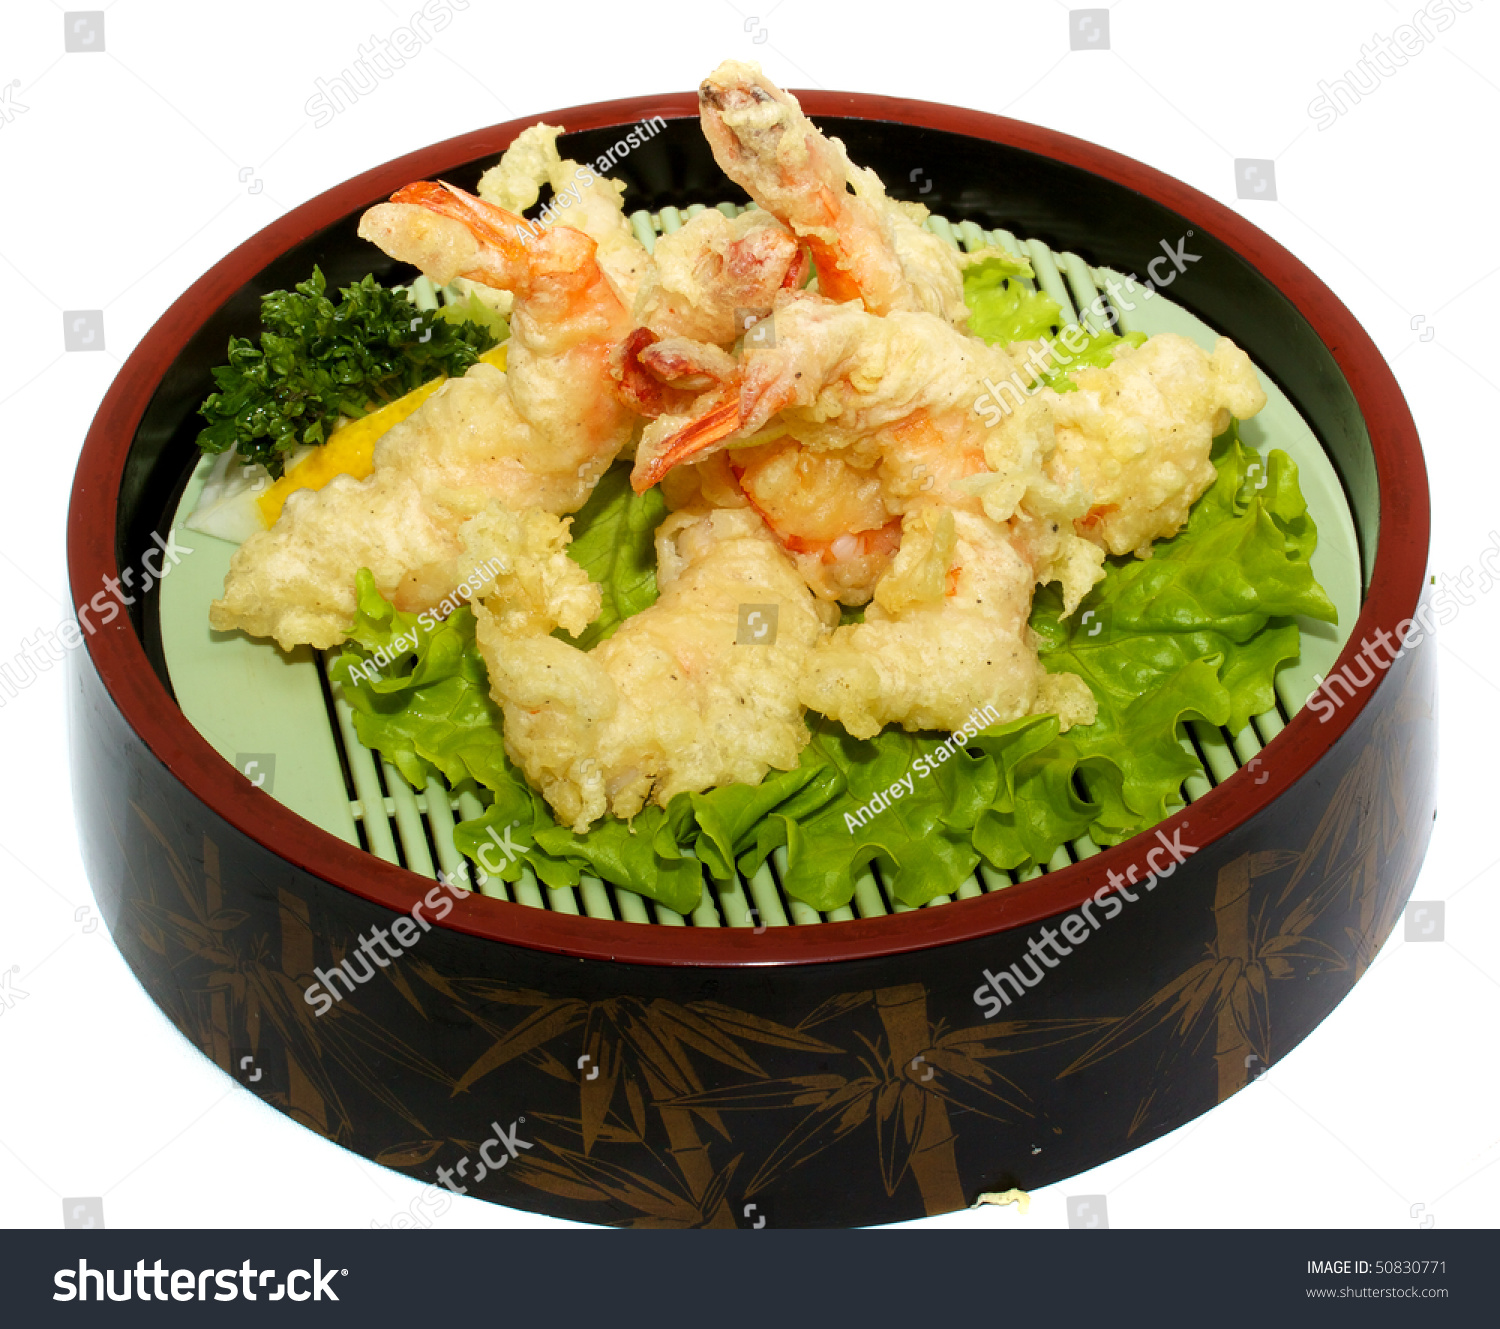 Japan traditional food stock photo 50830771 shutterstock for Abis japanese traditional cuisine